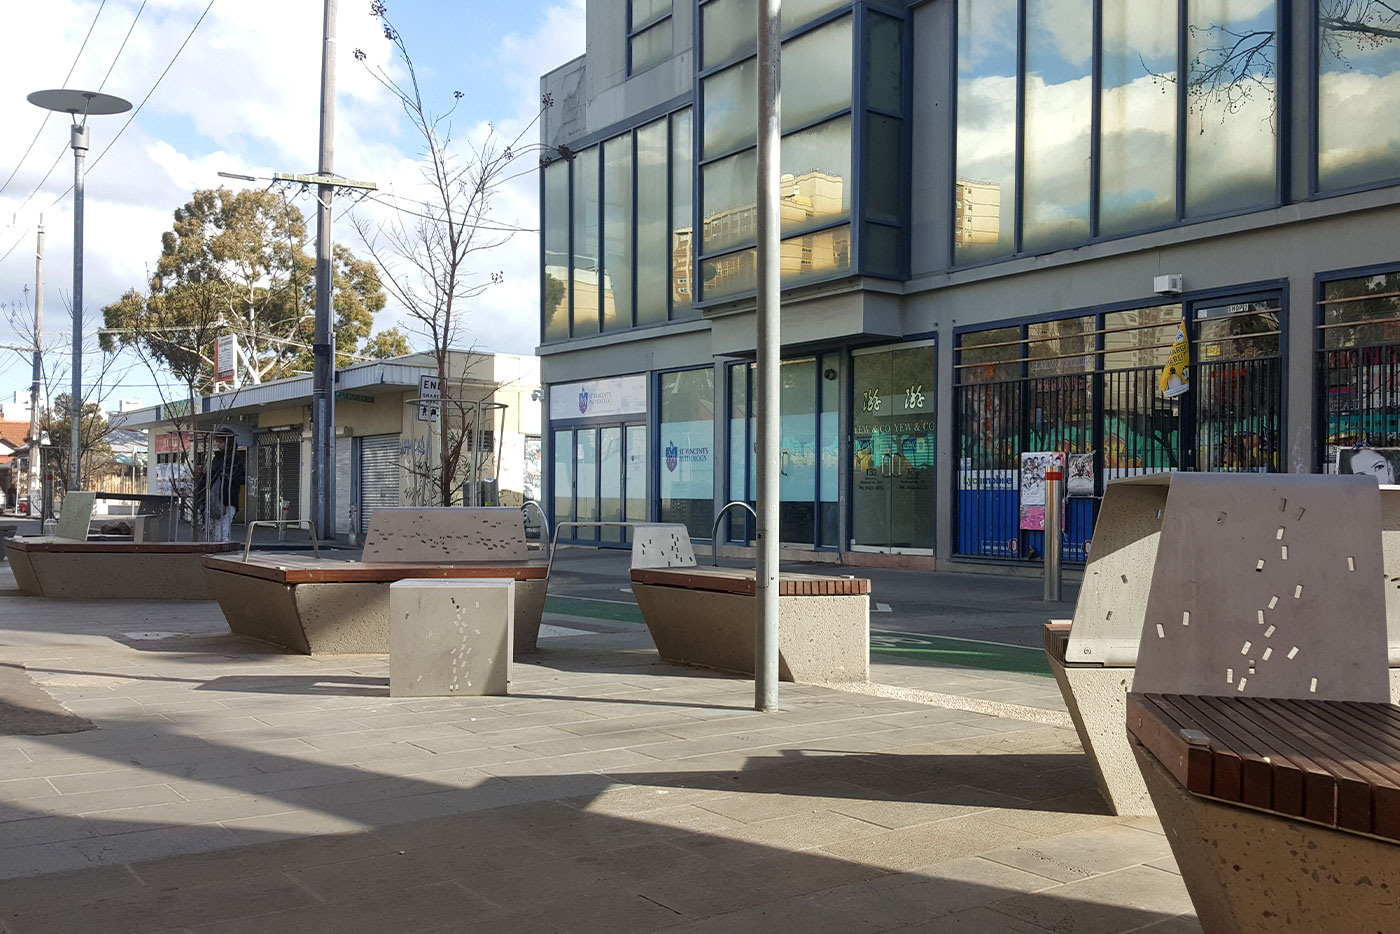 How Concrete Furniture Can Assist Street Transformation